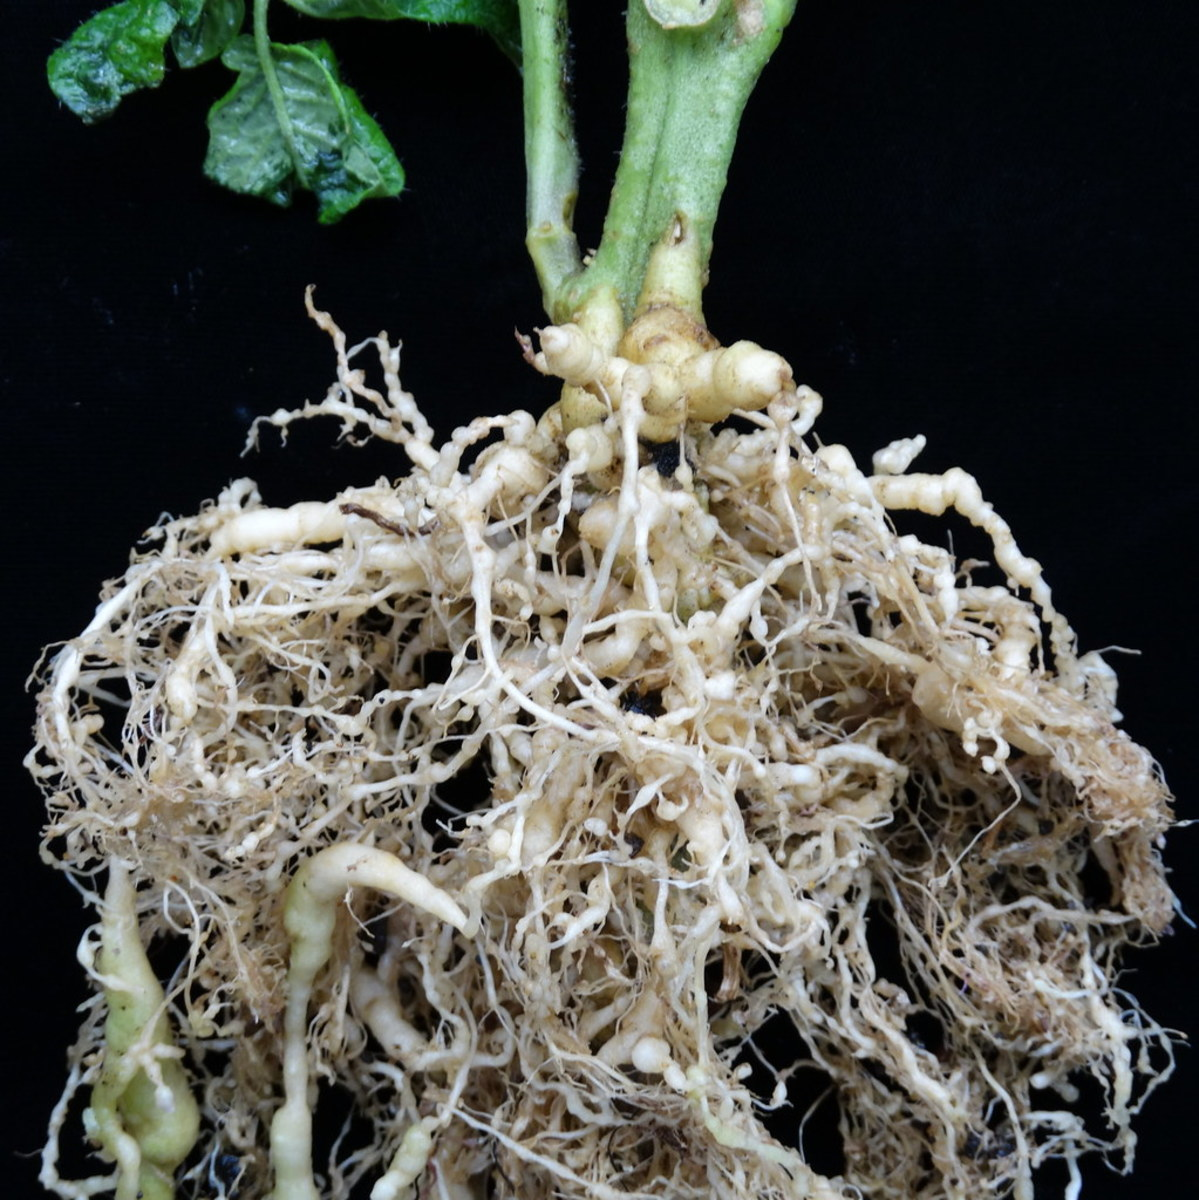 Tomato plant roots damaged by nematodes.